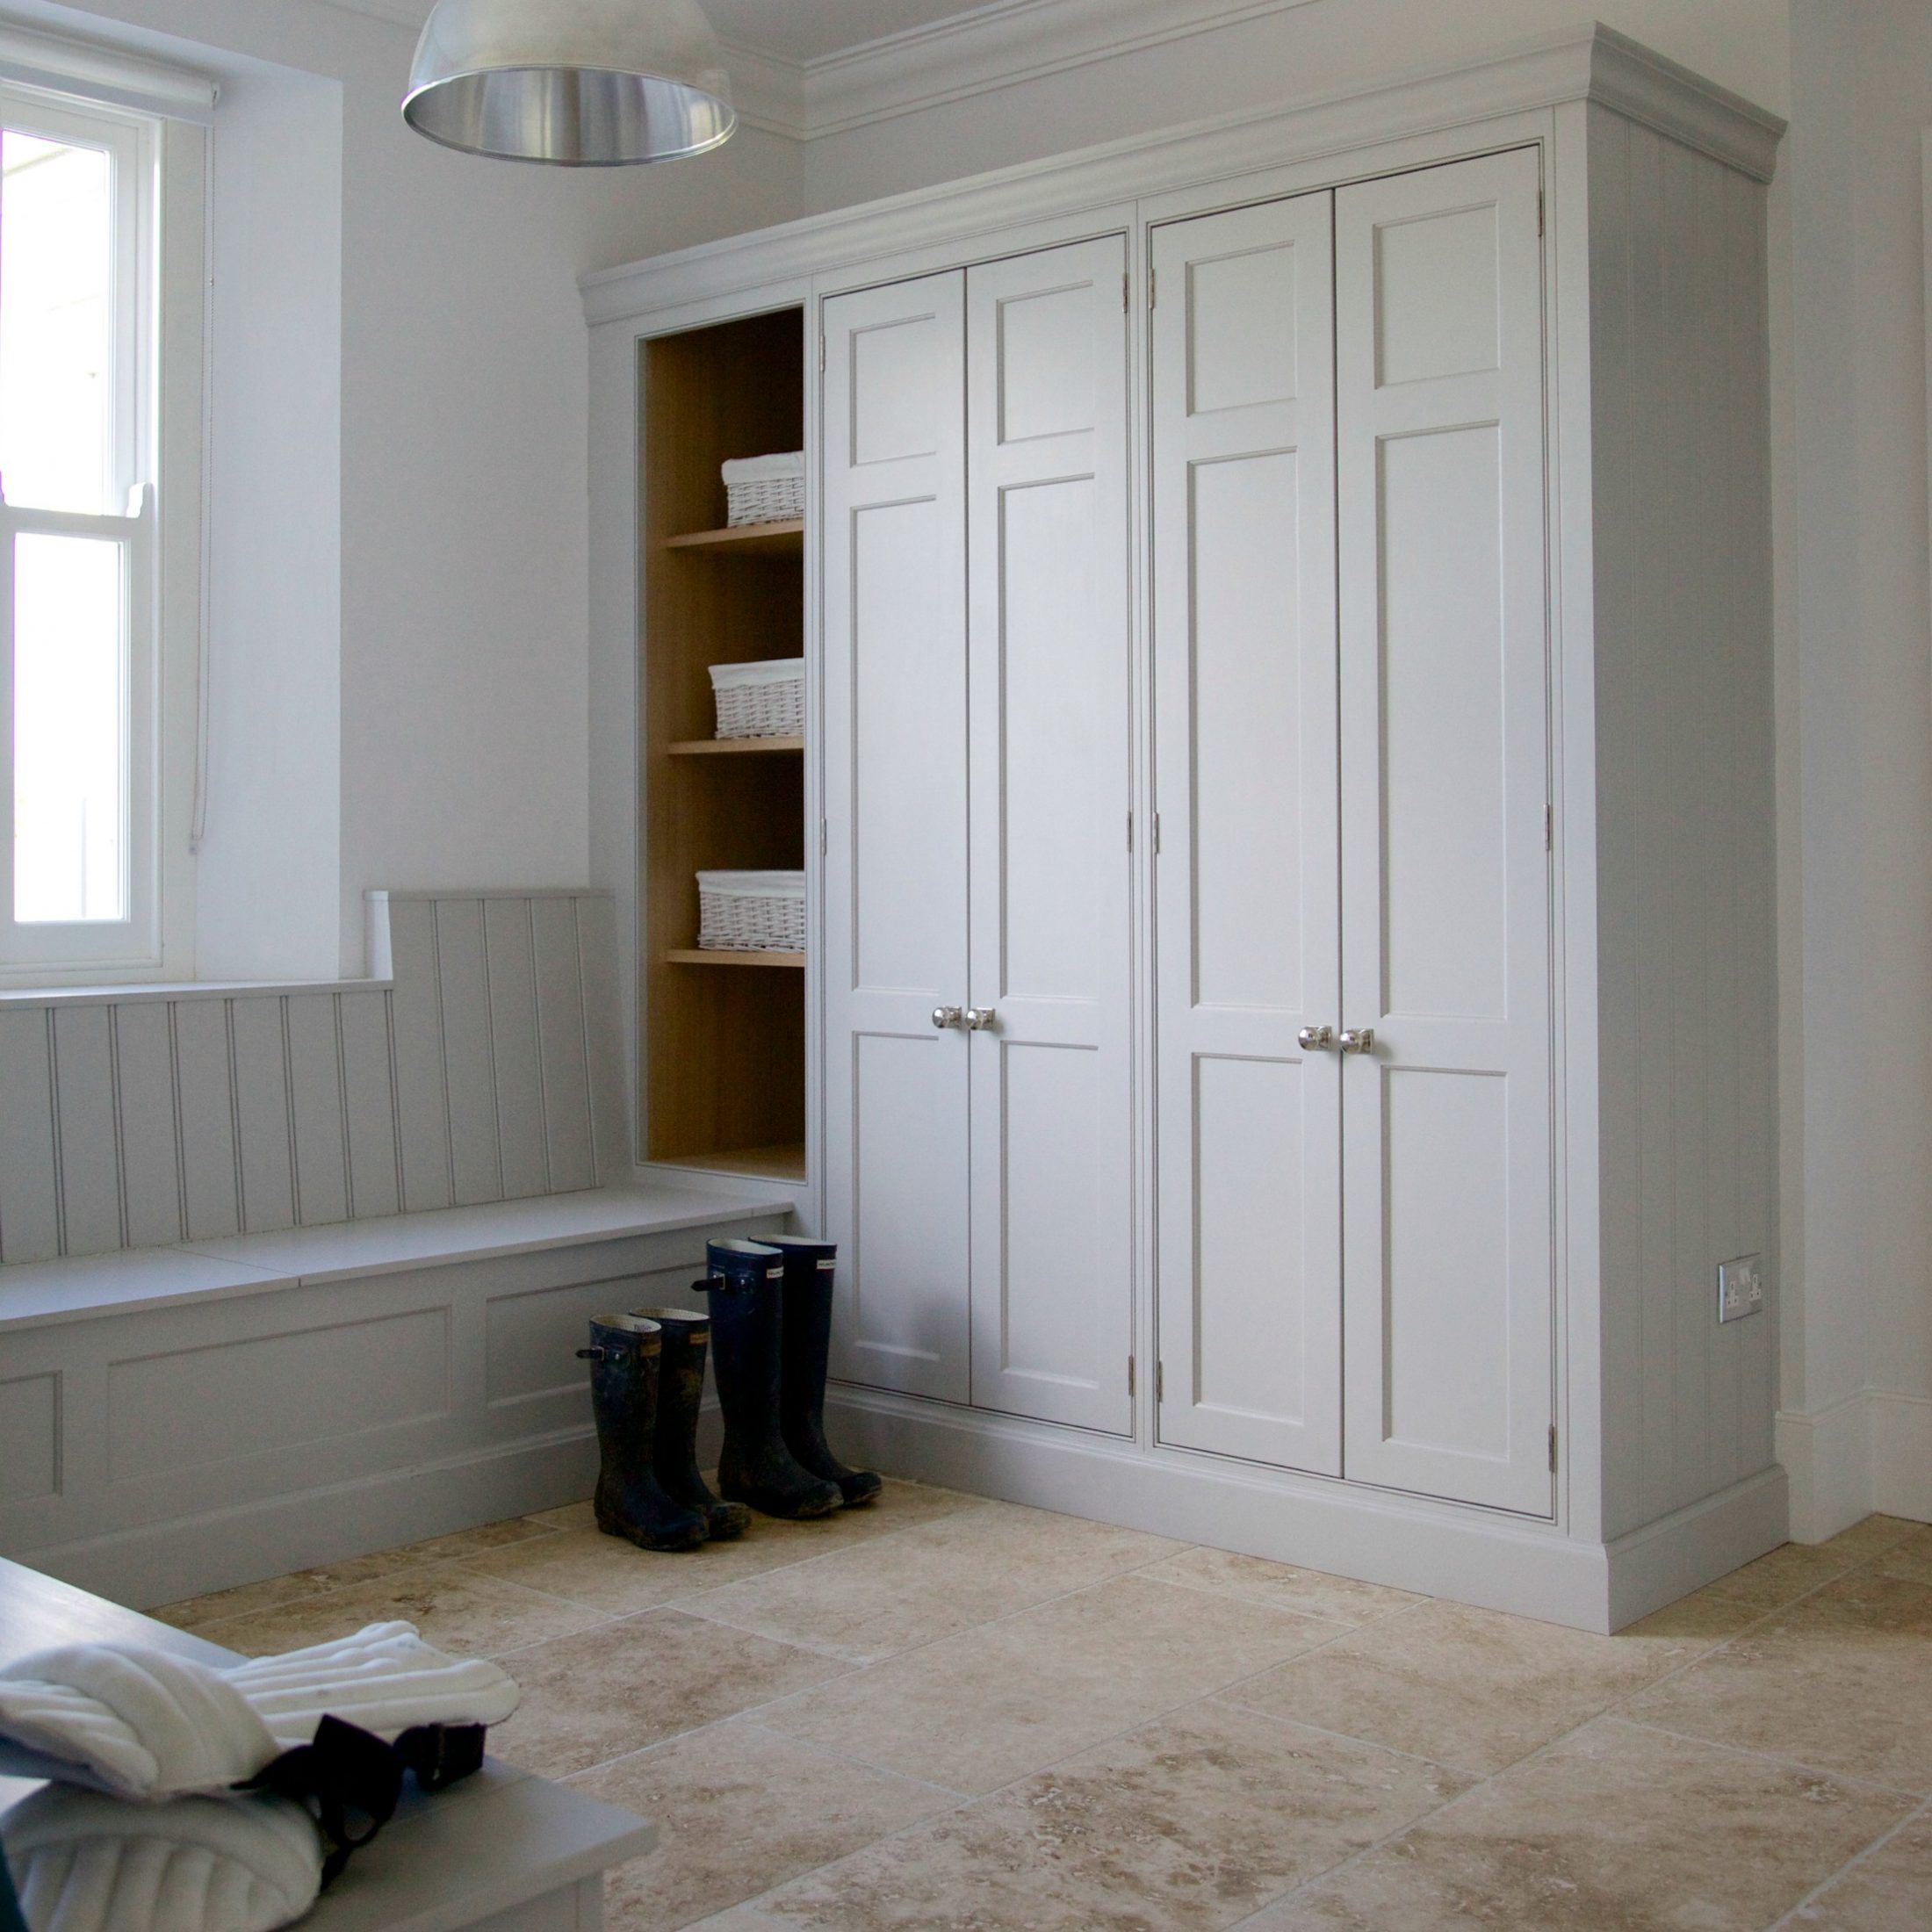 Utility Room Cupboards Open Plan Kitchen Dining Room: We All Know That Open Plan Kitchen